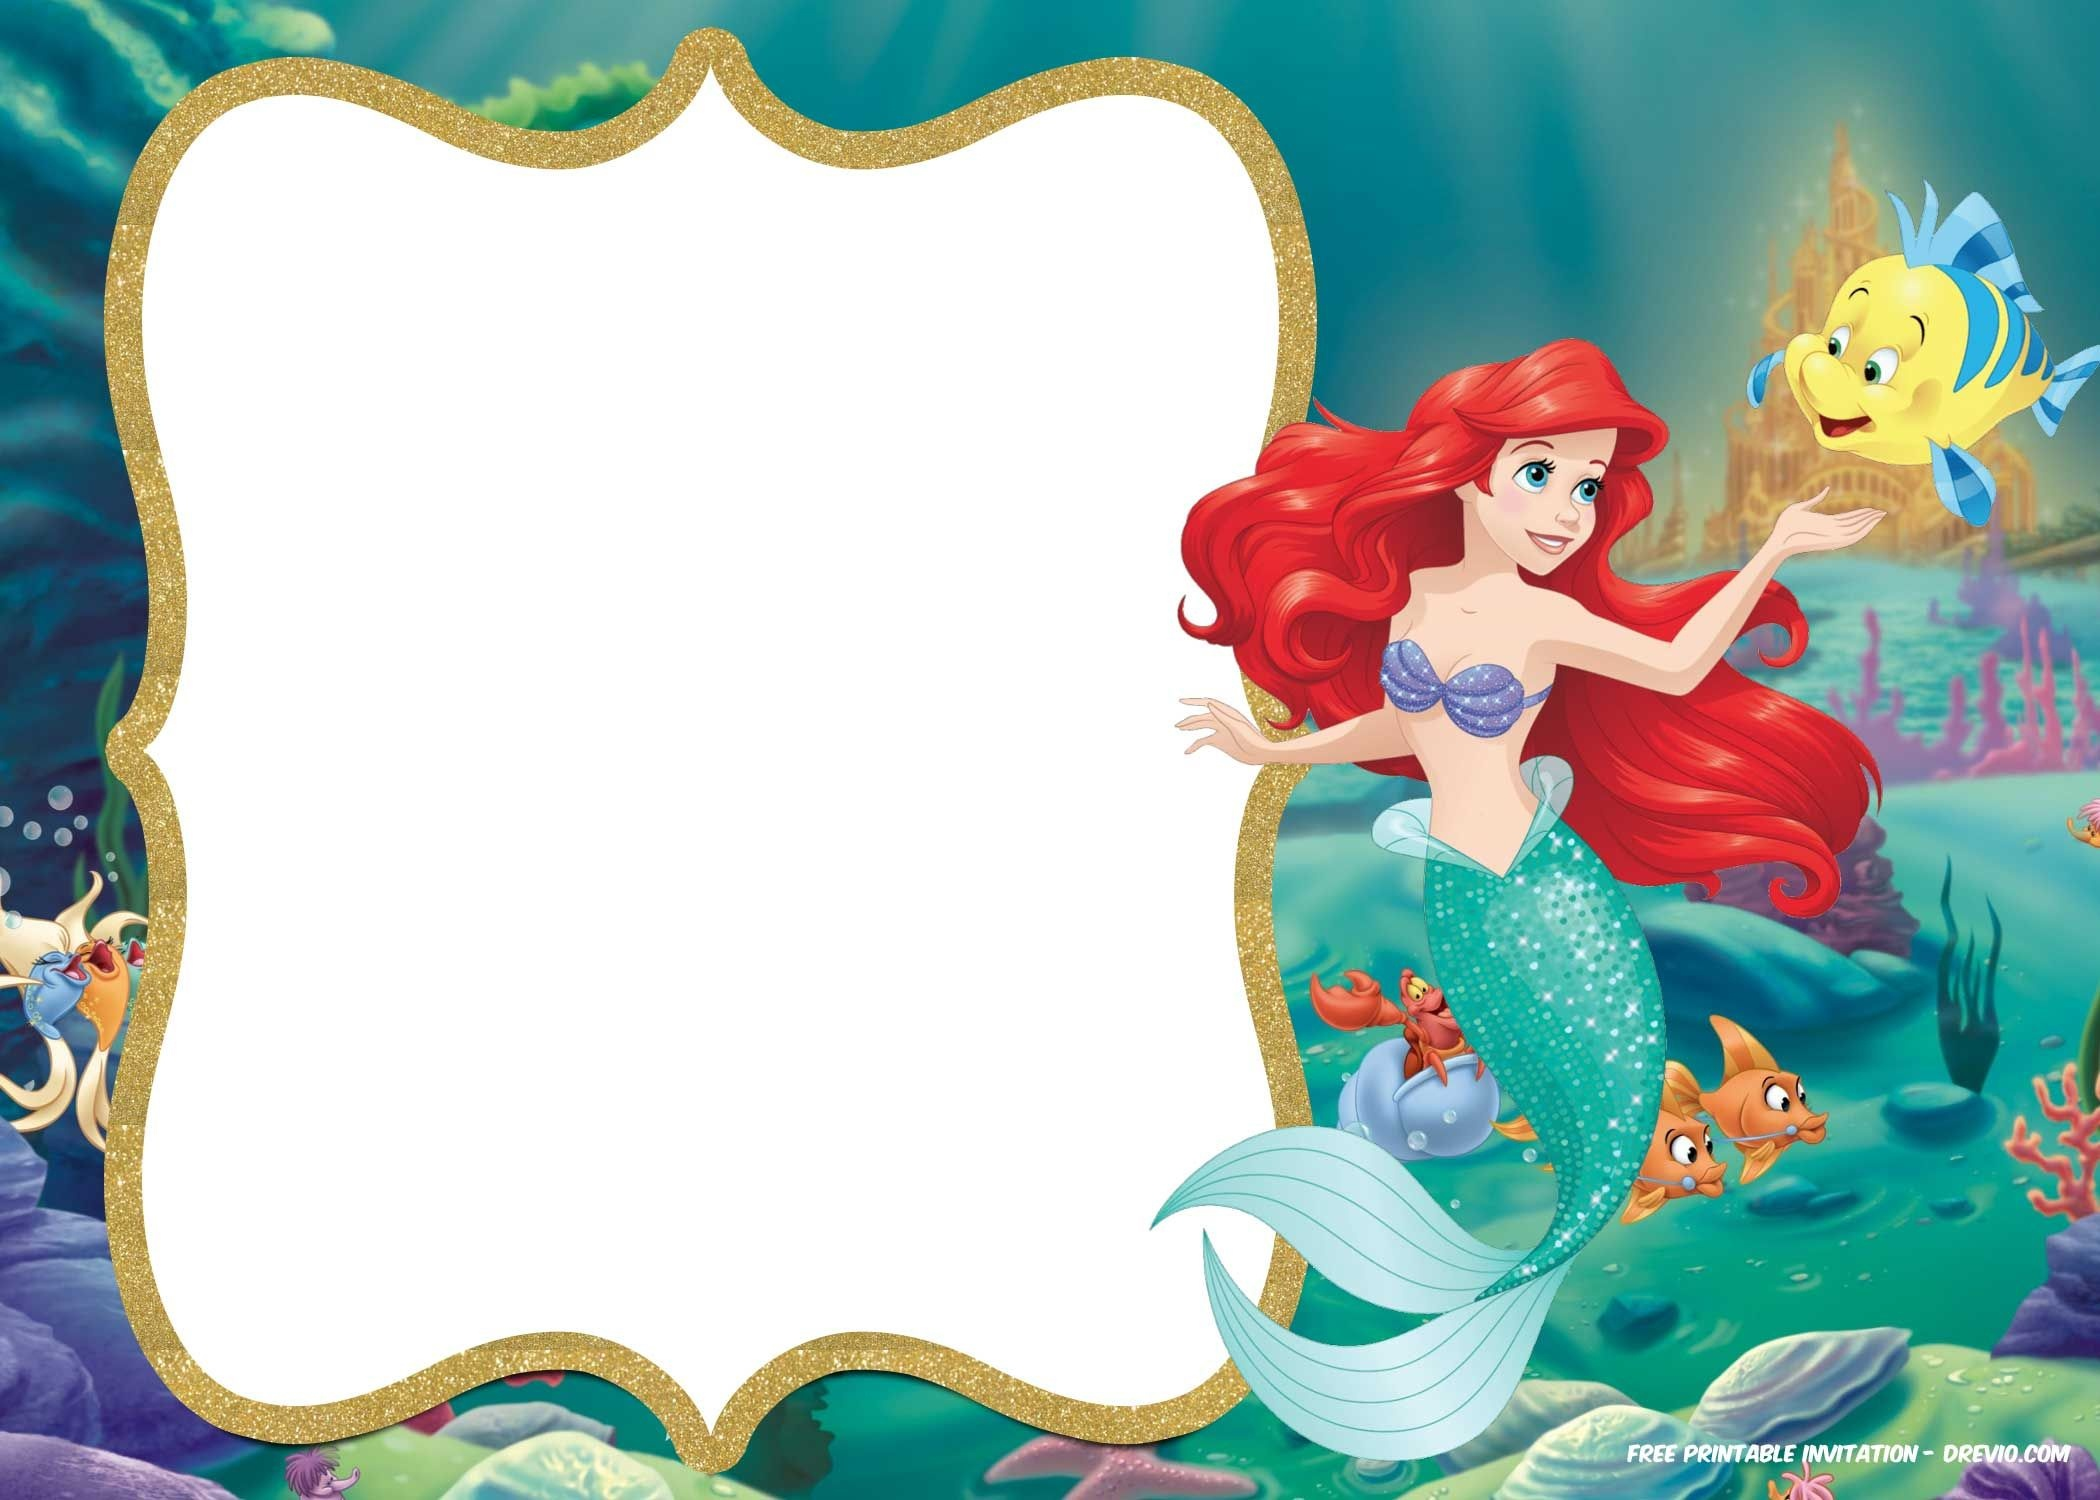 Little Mermaid Royal Invitation | Free Printable Birthday - Free Little Mermaid Printable Invitations